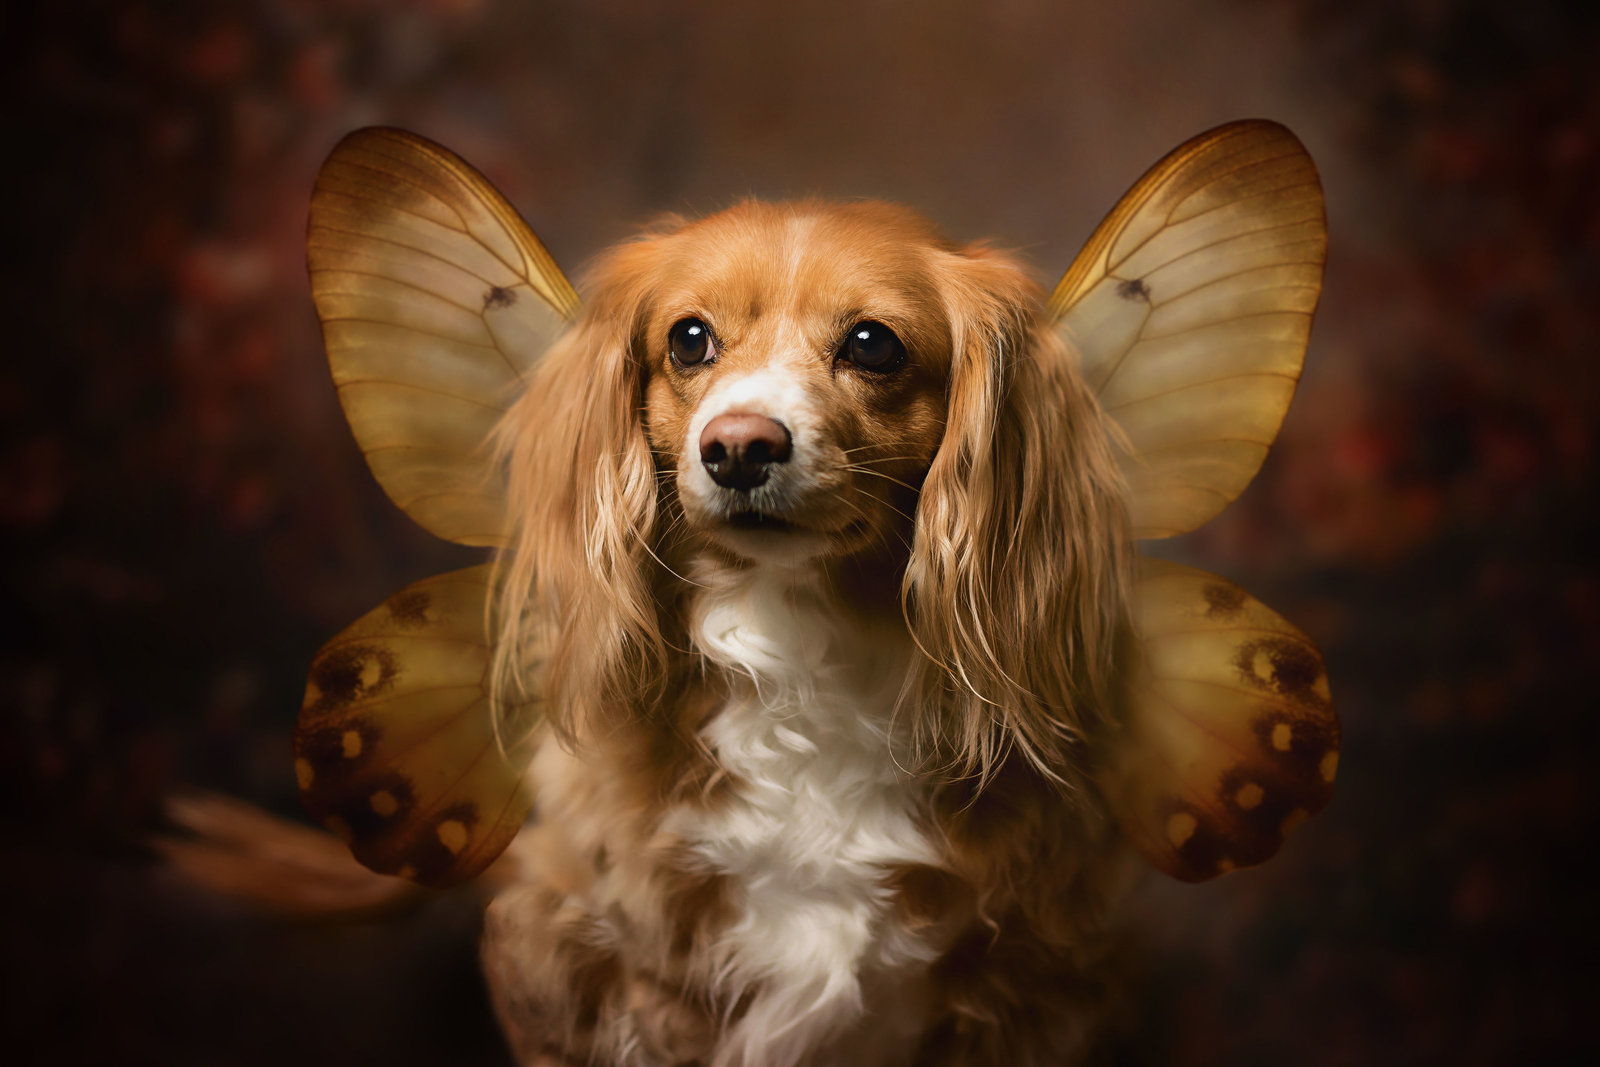 Wings-Dog-Fine Art-Studio.jpg-min